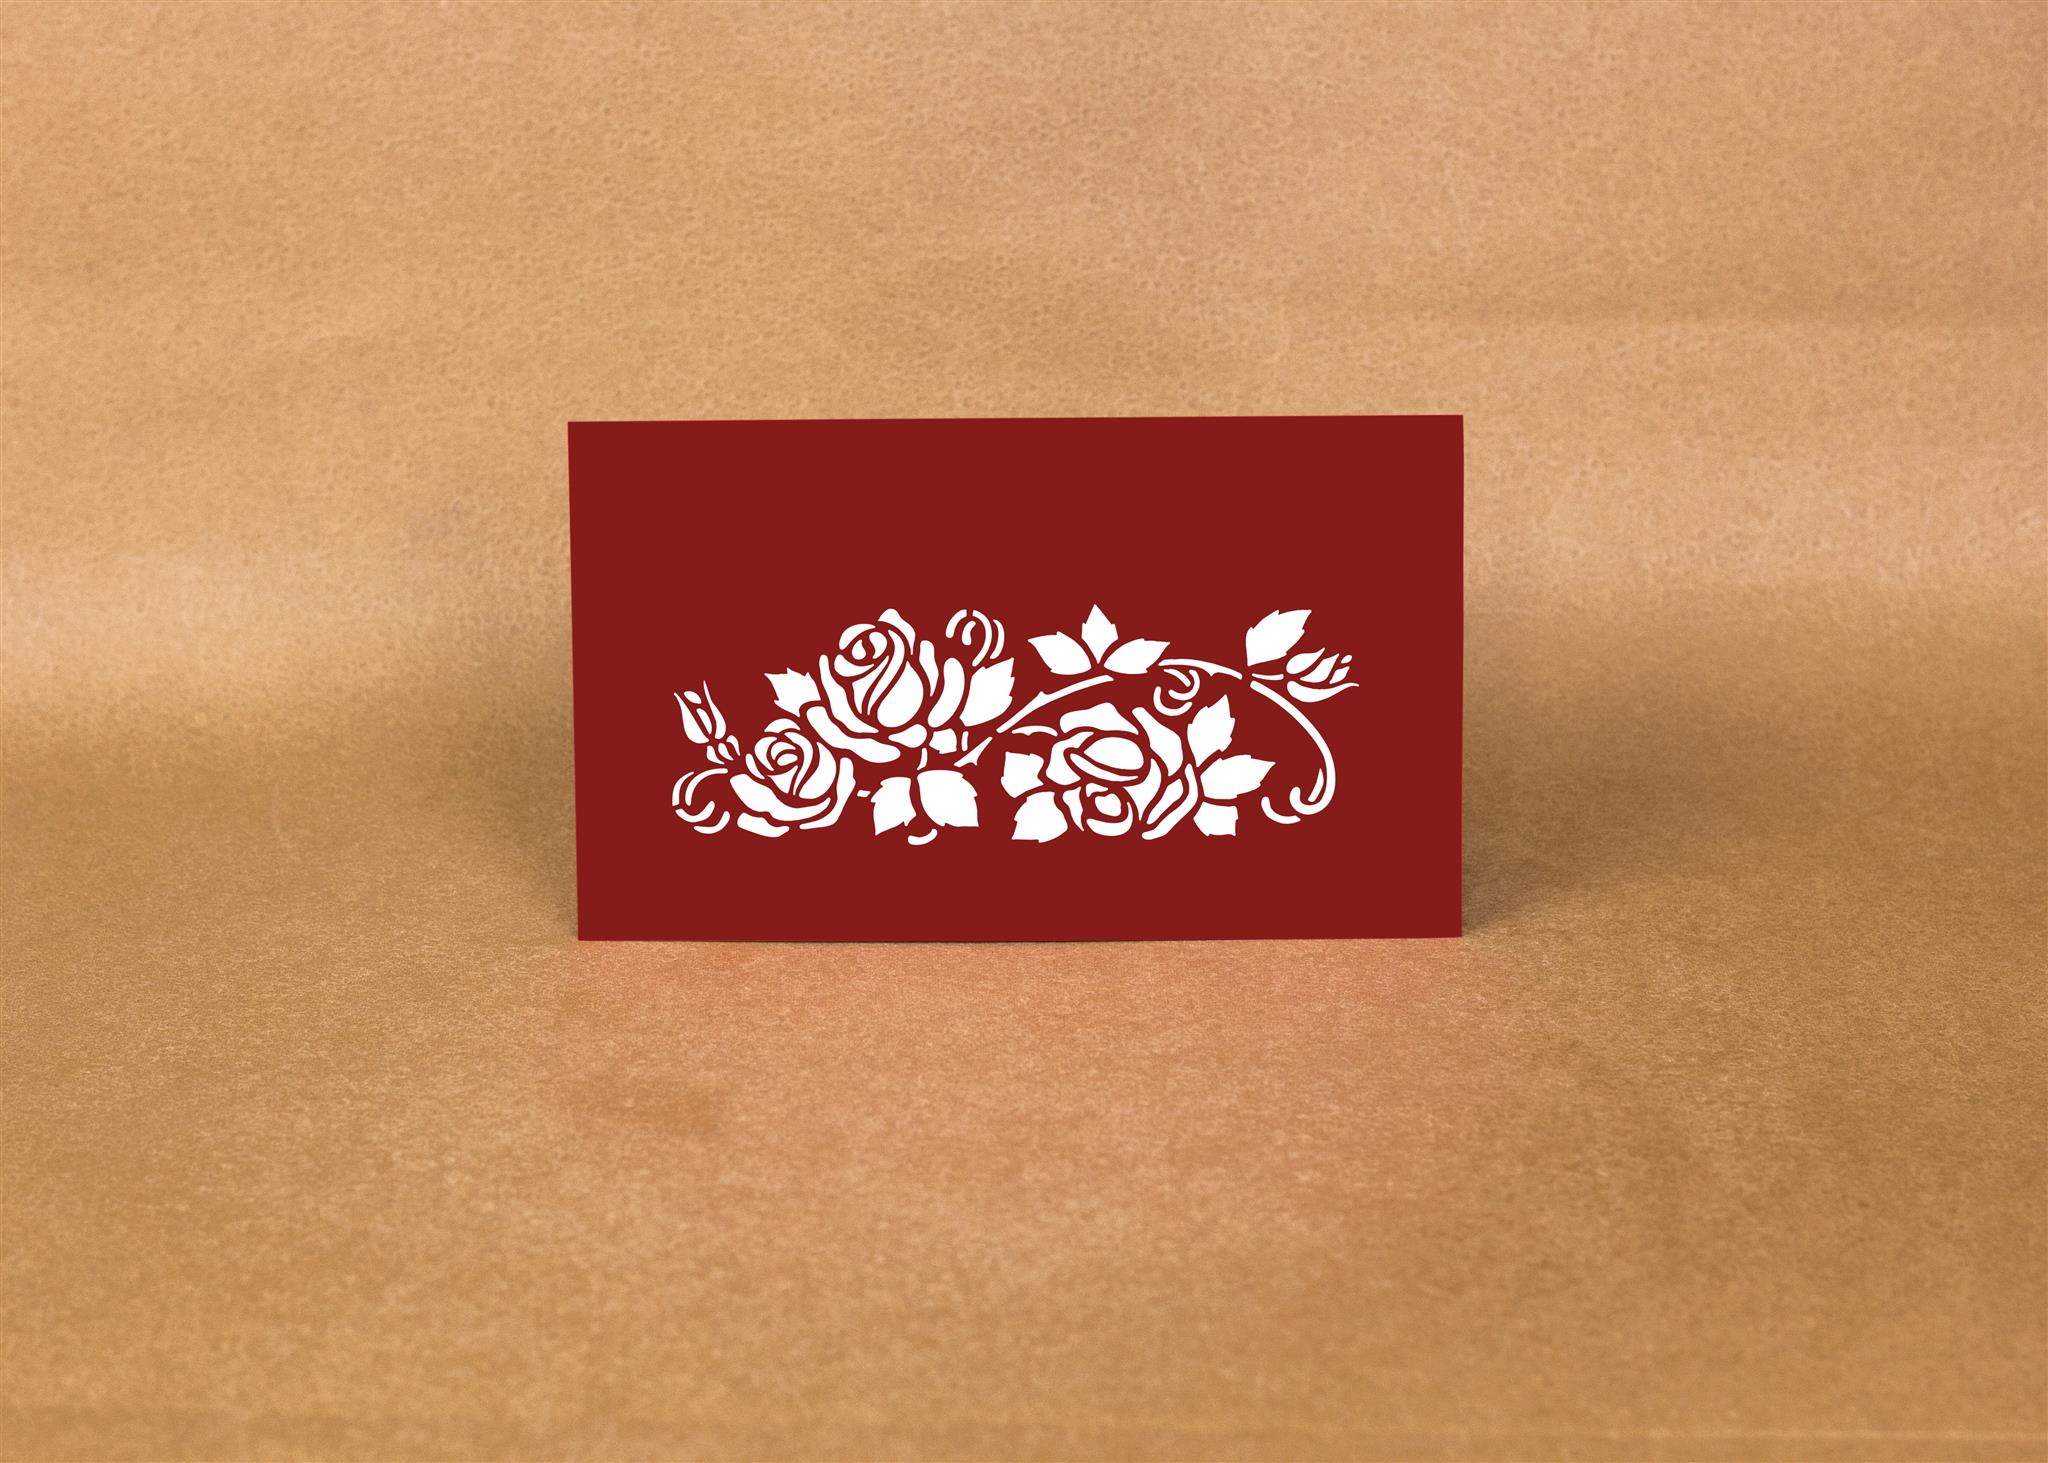 Handmade pop up anniversary cards wholesale pop up cards supplier